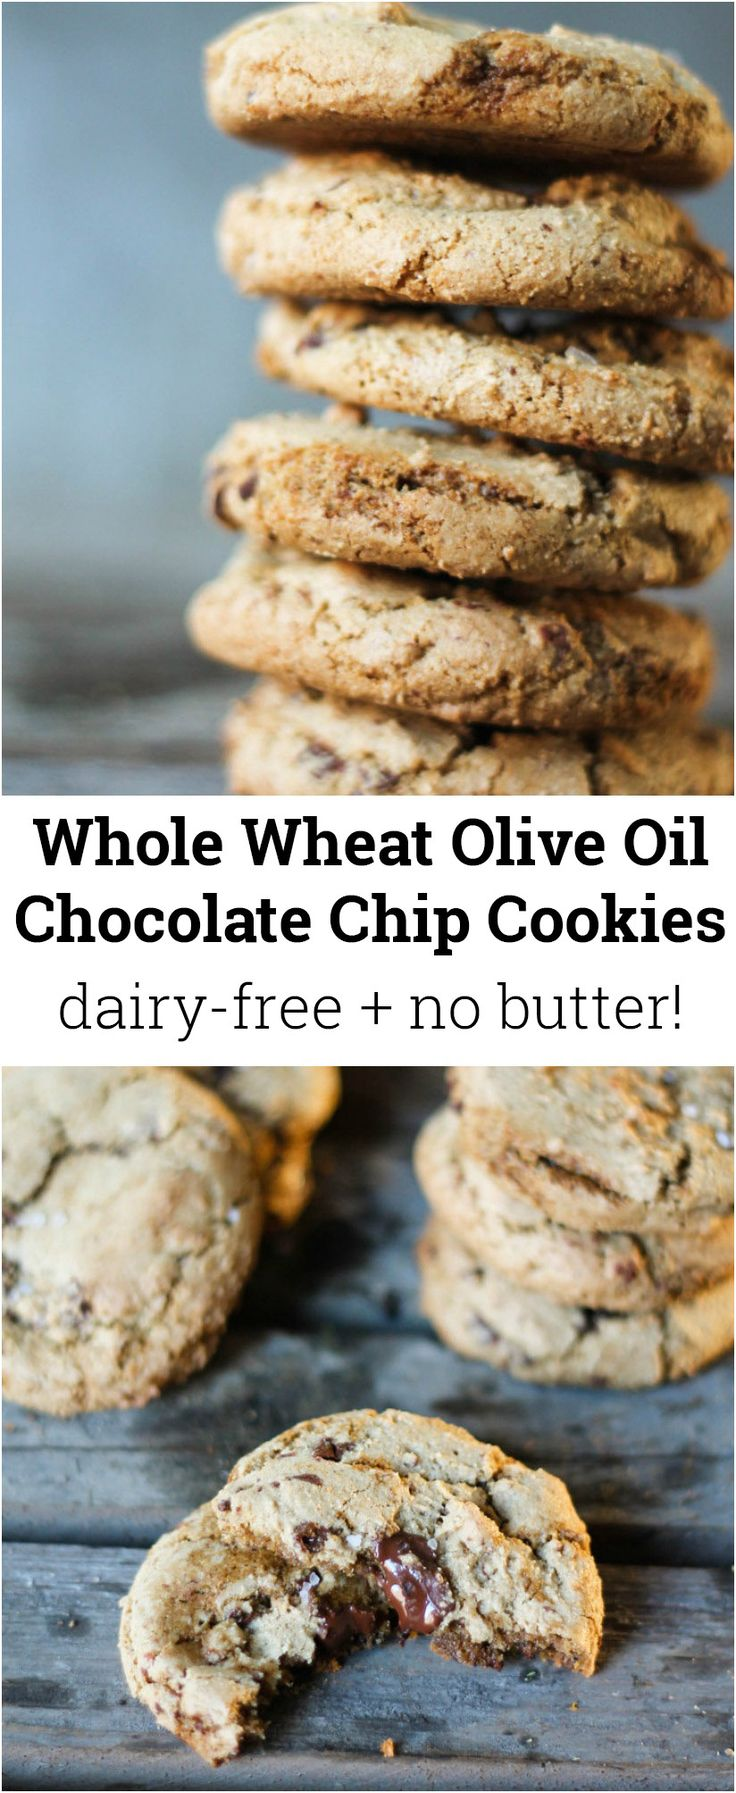 Delicious chocolate chip cookies made with whole wheat flour and olive oil instead of butter!